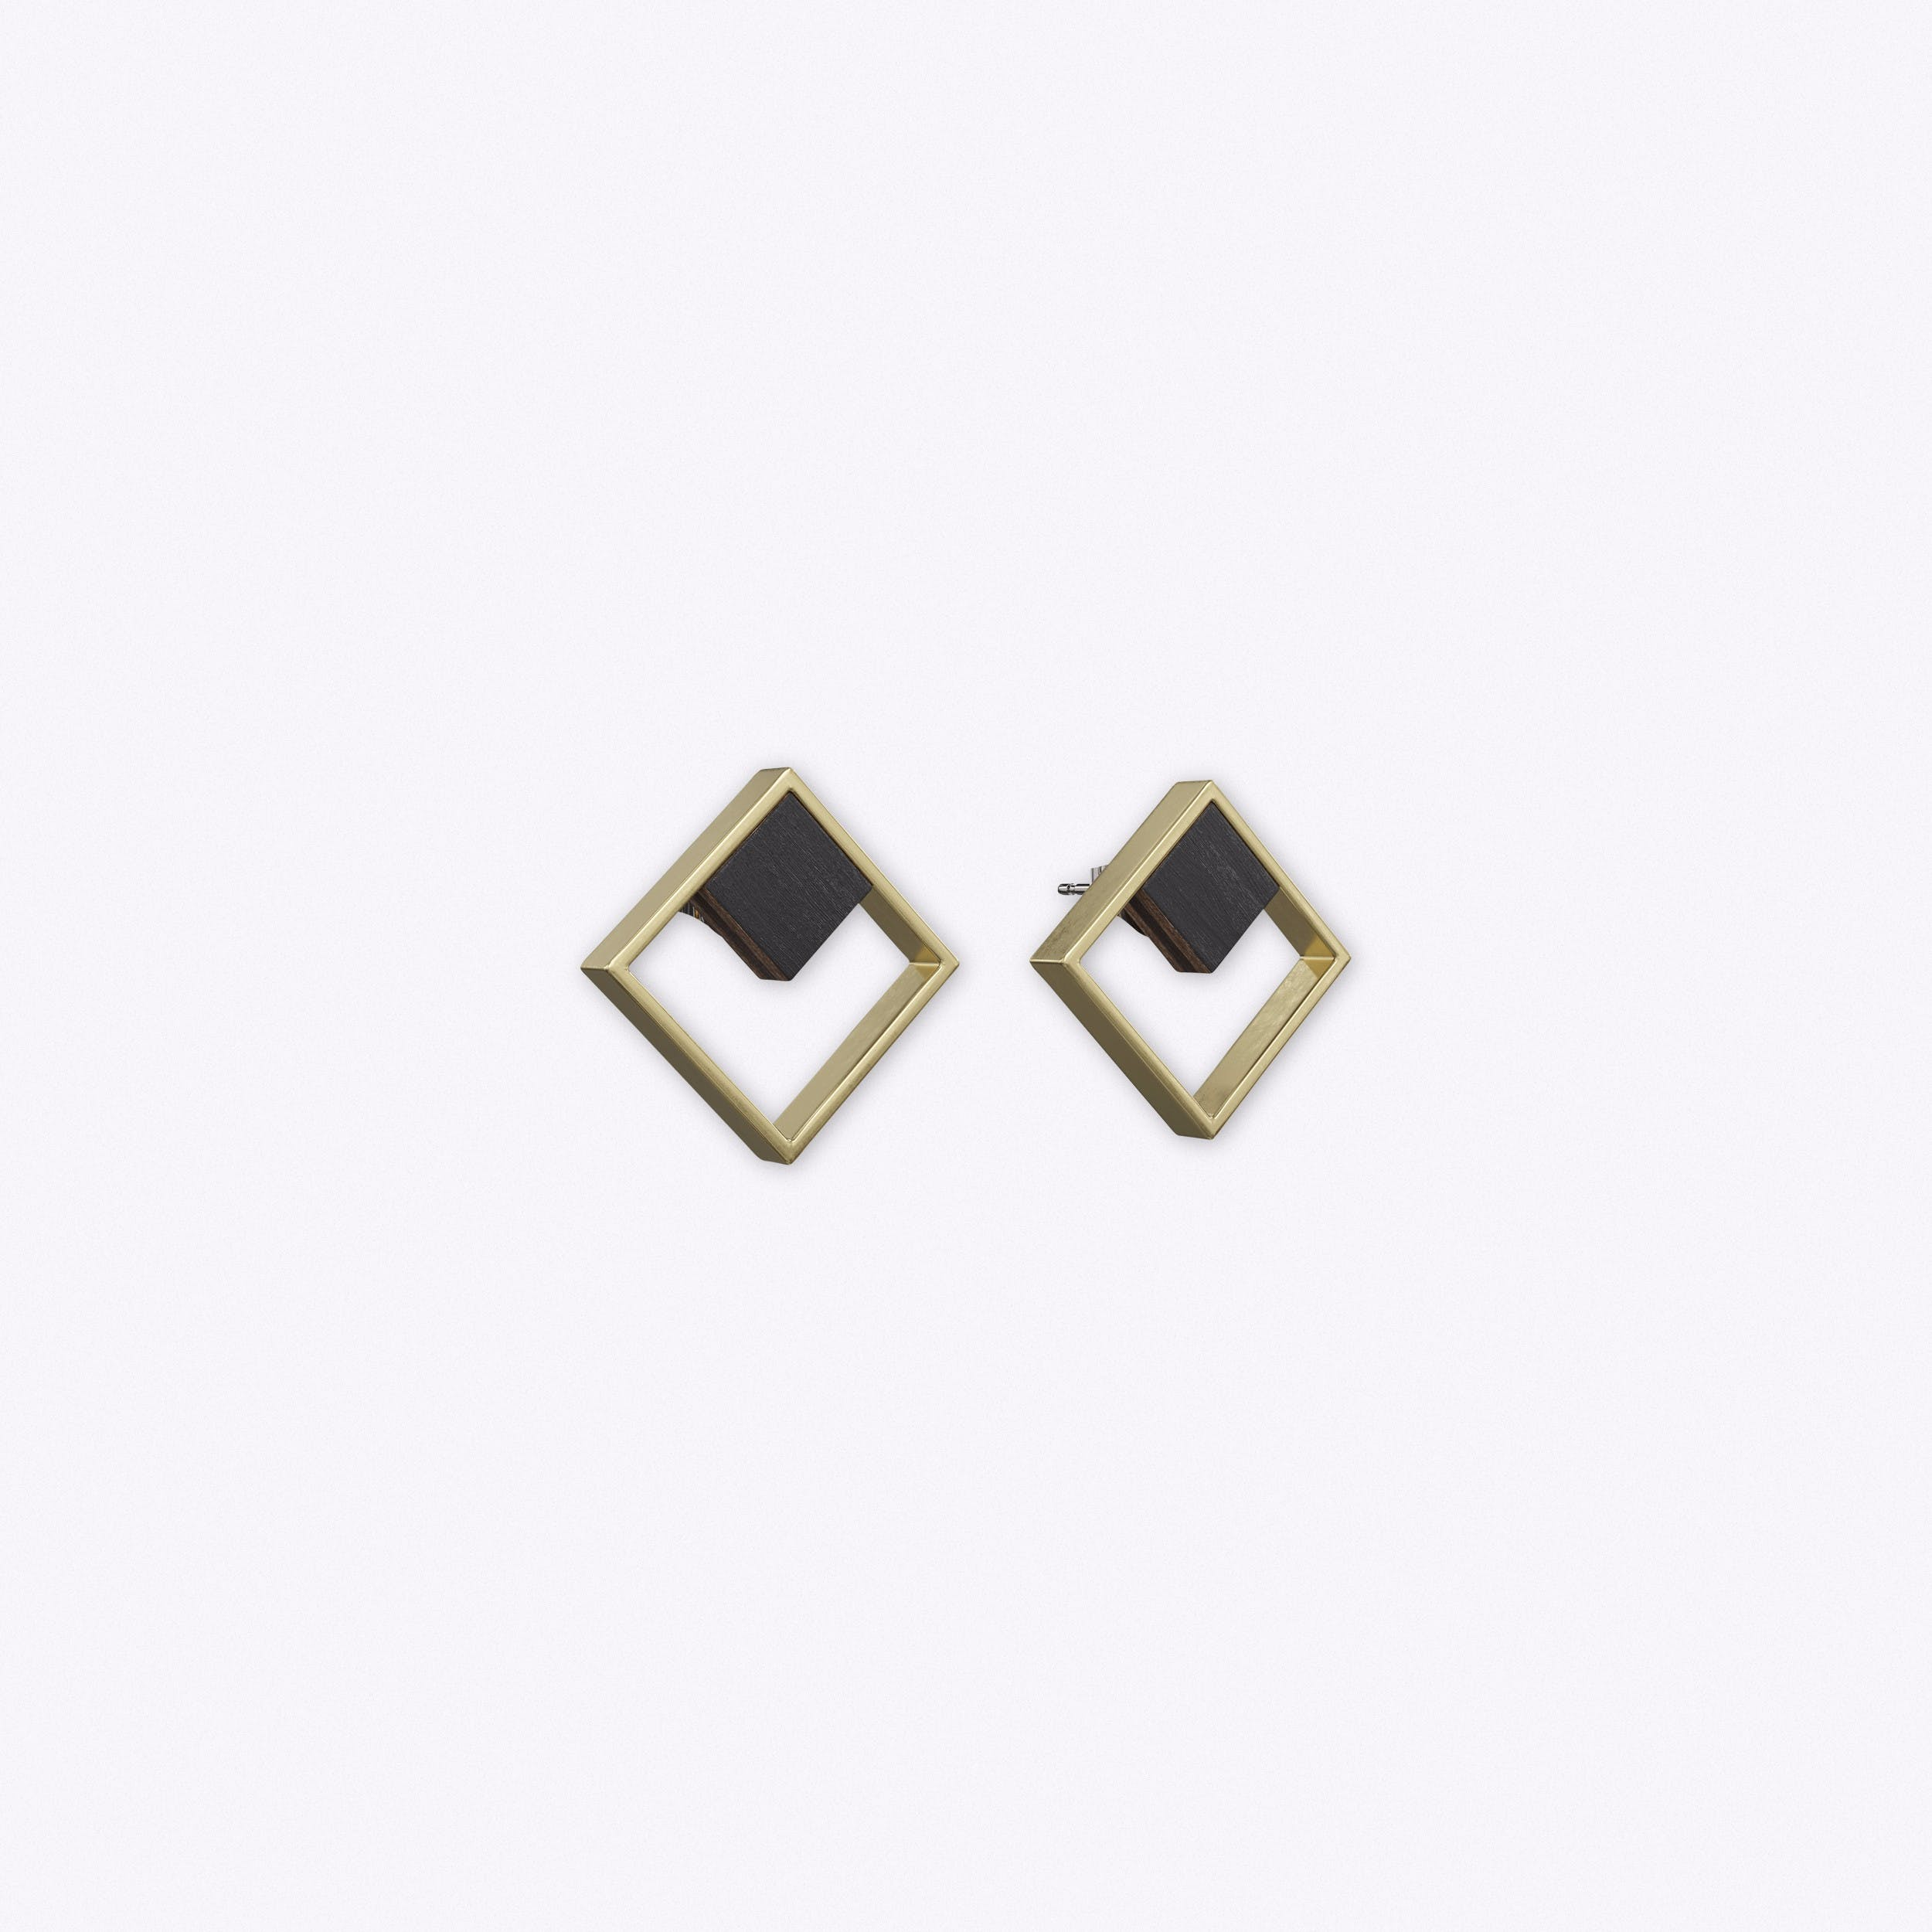 Indikativ Earrings in Antique Gold